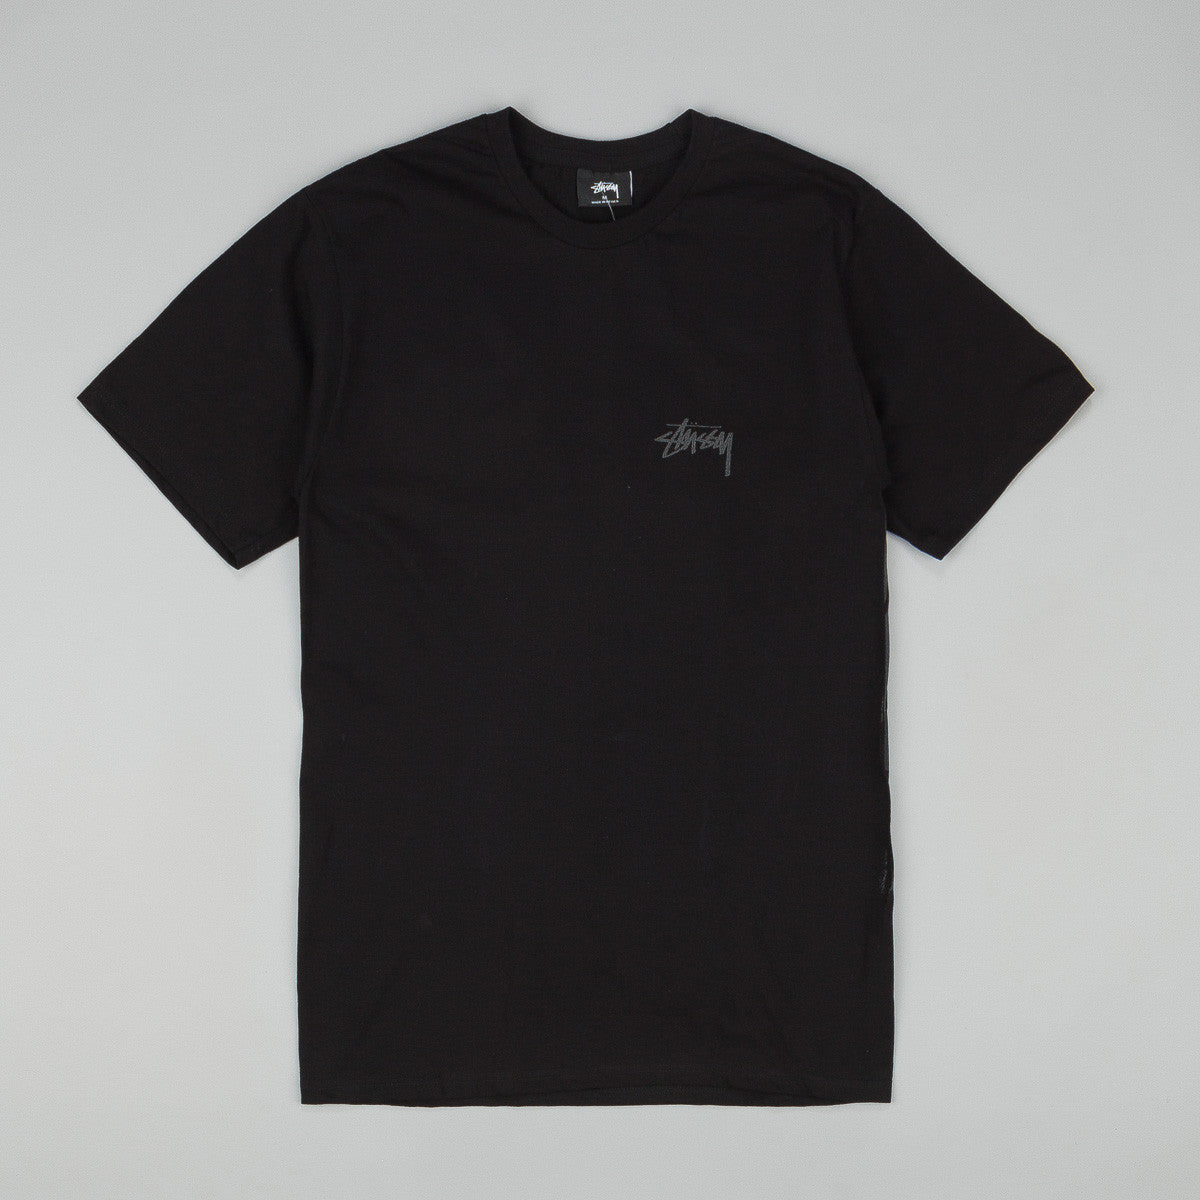 Stussy Big Stock T-Shirt